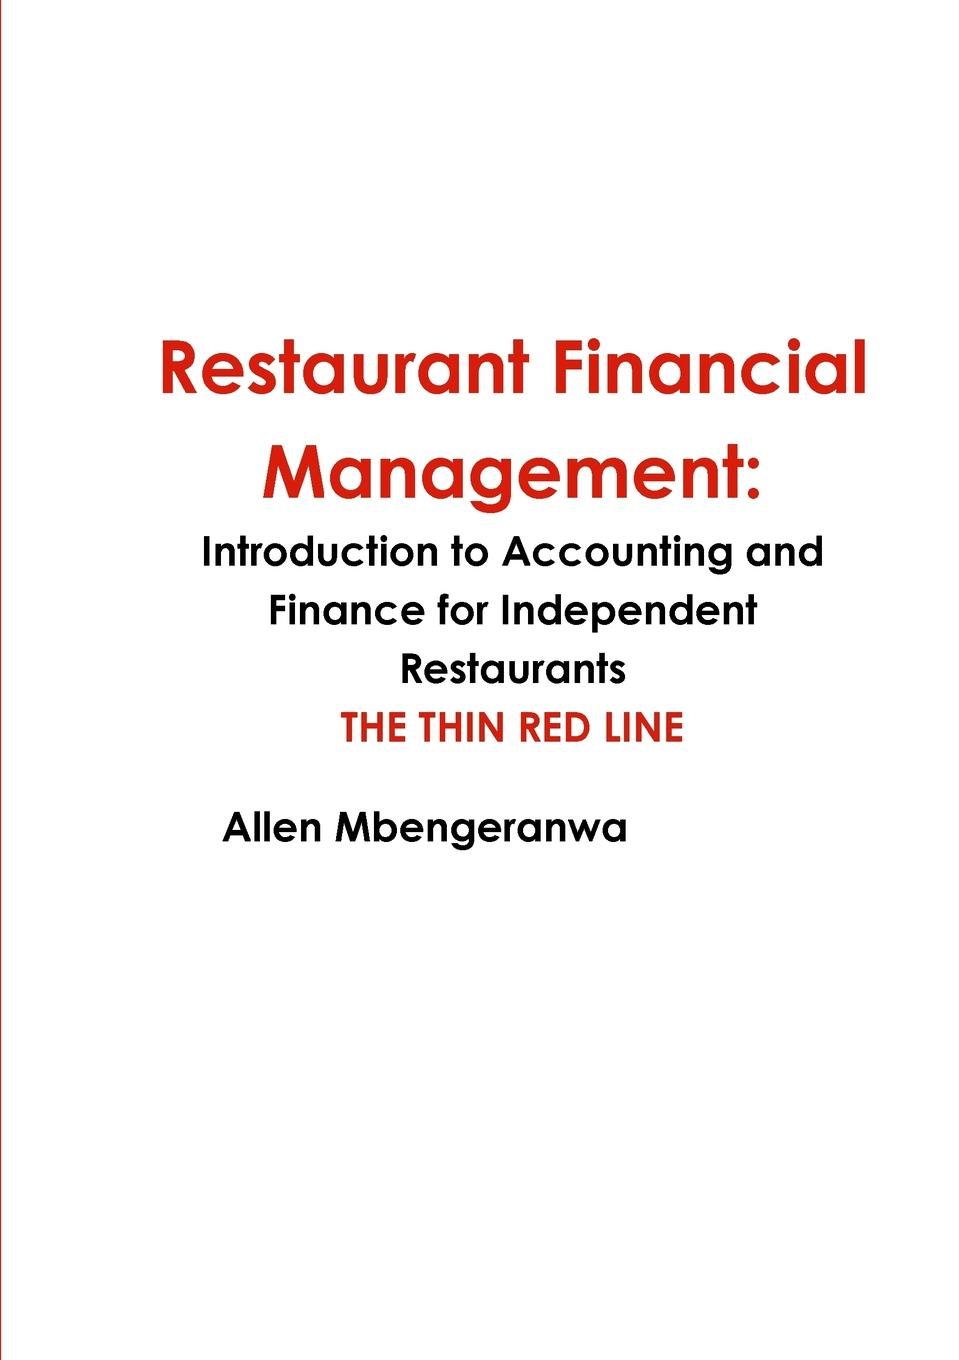 Allen Mbengeranwa Restaurant Financial Management. Introduction to Accounting and Finance for Independent Restaurants kevin callahan r project management accounting budgeting tracking and reporting costs and profitability